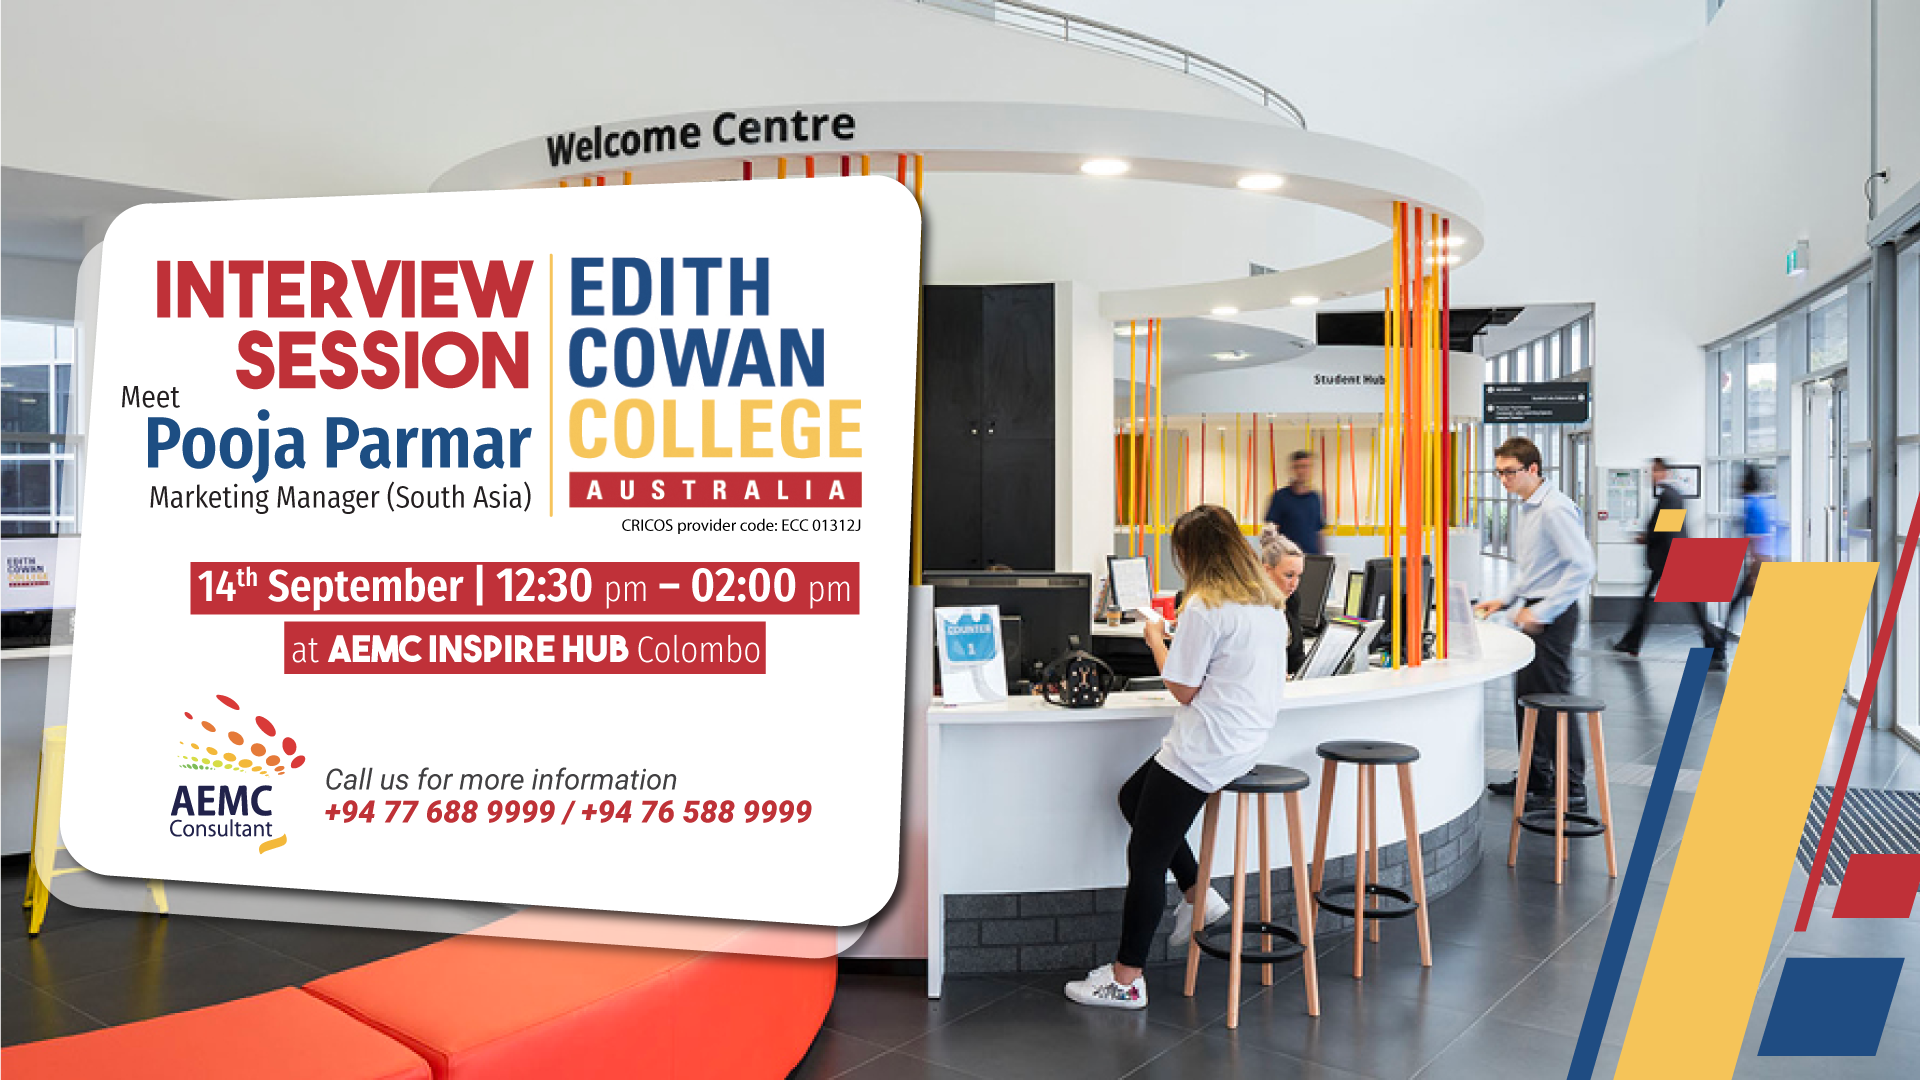 Edith Cowan College Interview Session